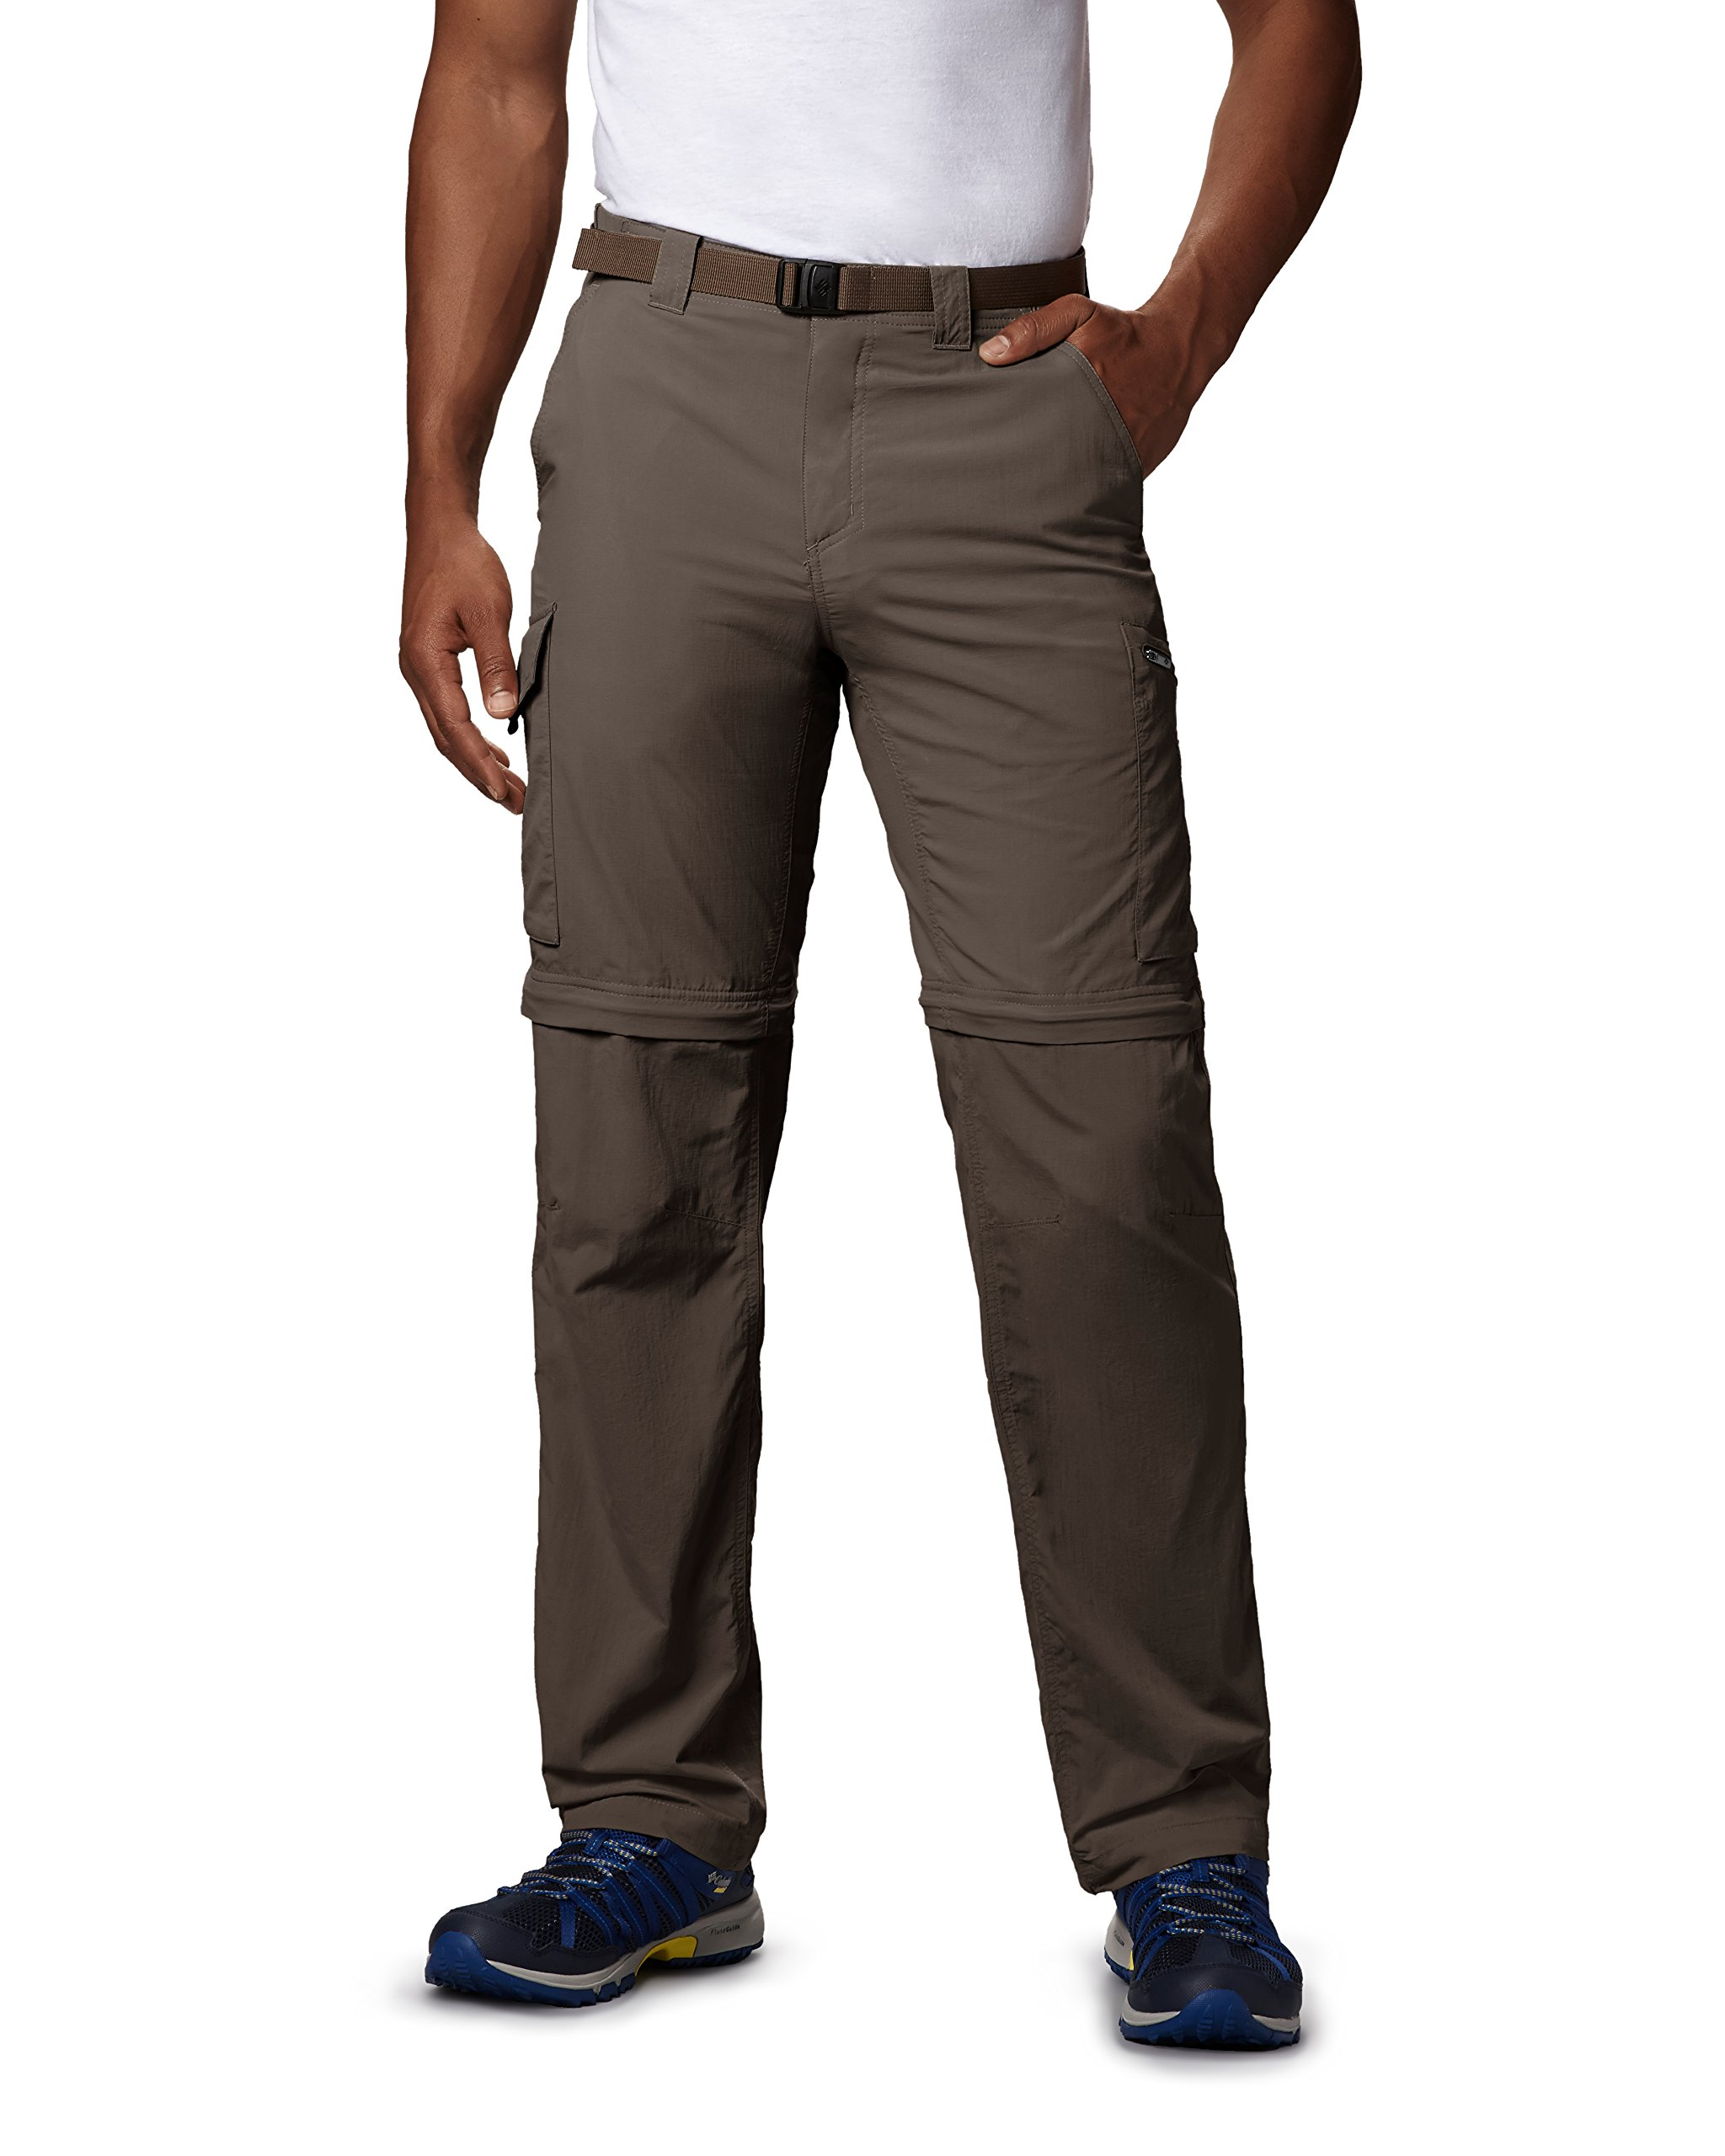 Columbia Standard Men's Silver Ridge Convertible Pant, Breathable, UPF, Major, 36x32 by Columbia